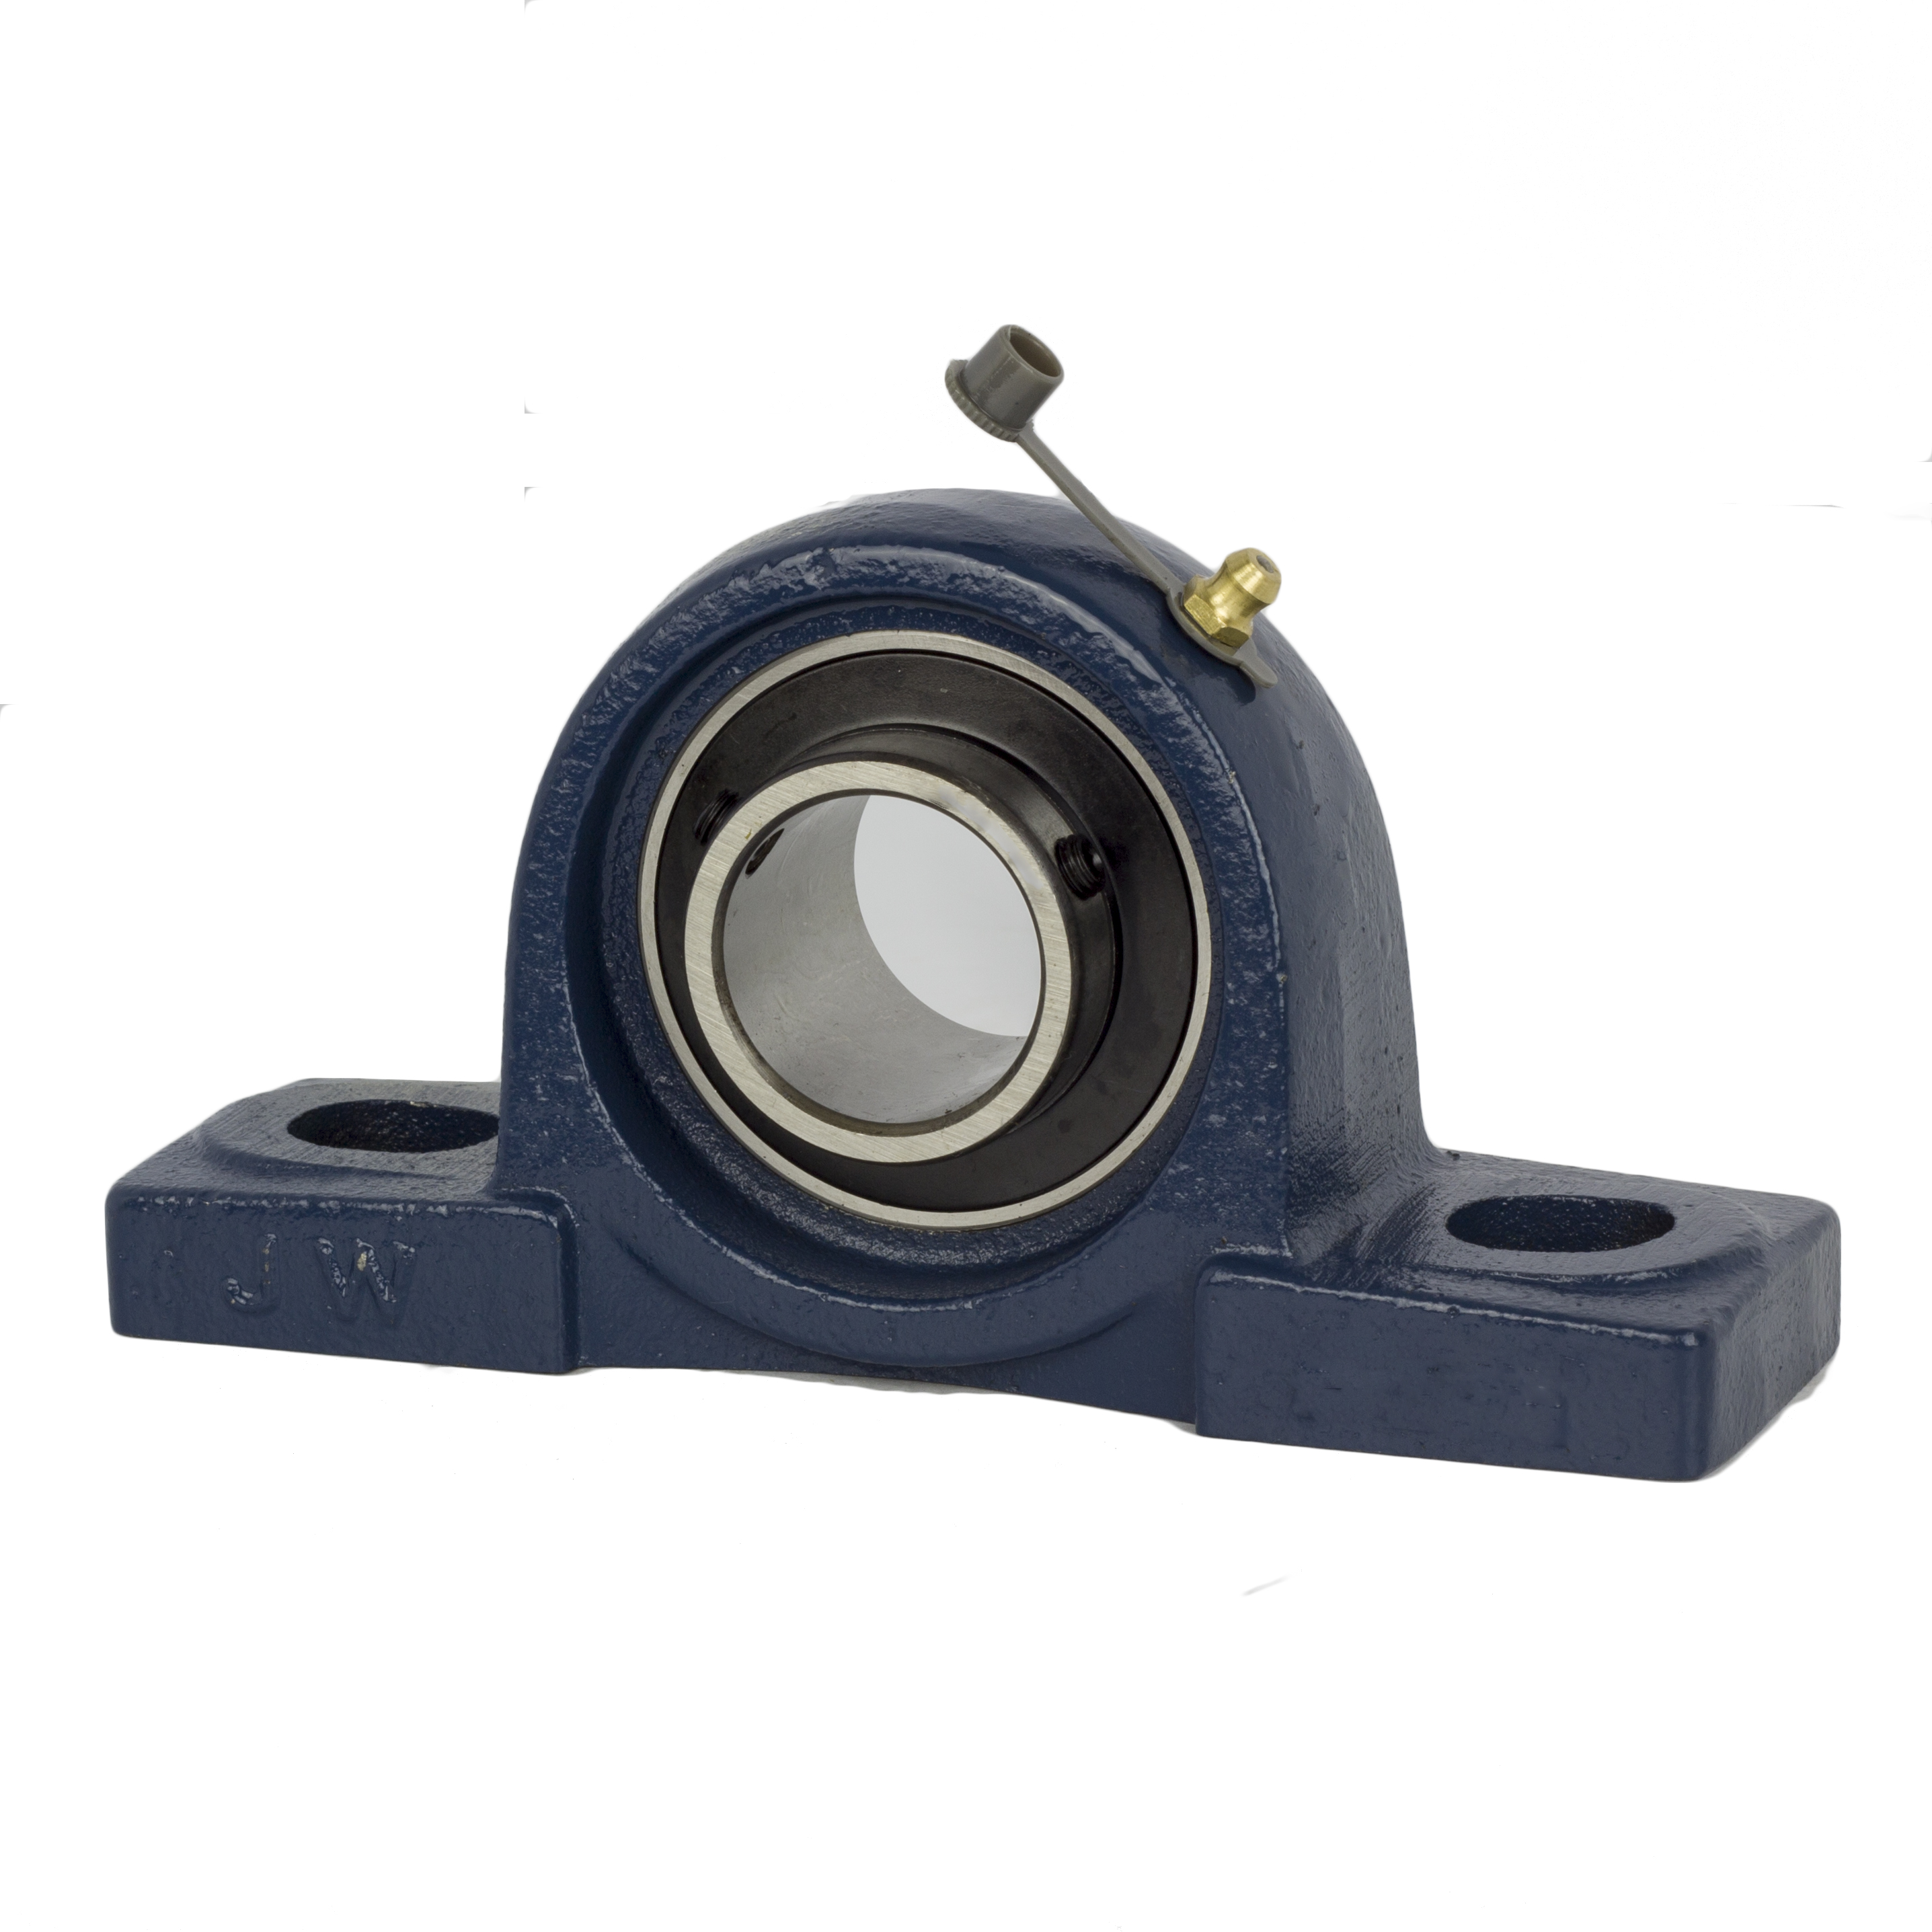 2 Piece UCP201-8, 1/2 inch Pillow Block Bearing Solid Base,Self-Alignment, Brand NEW